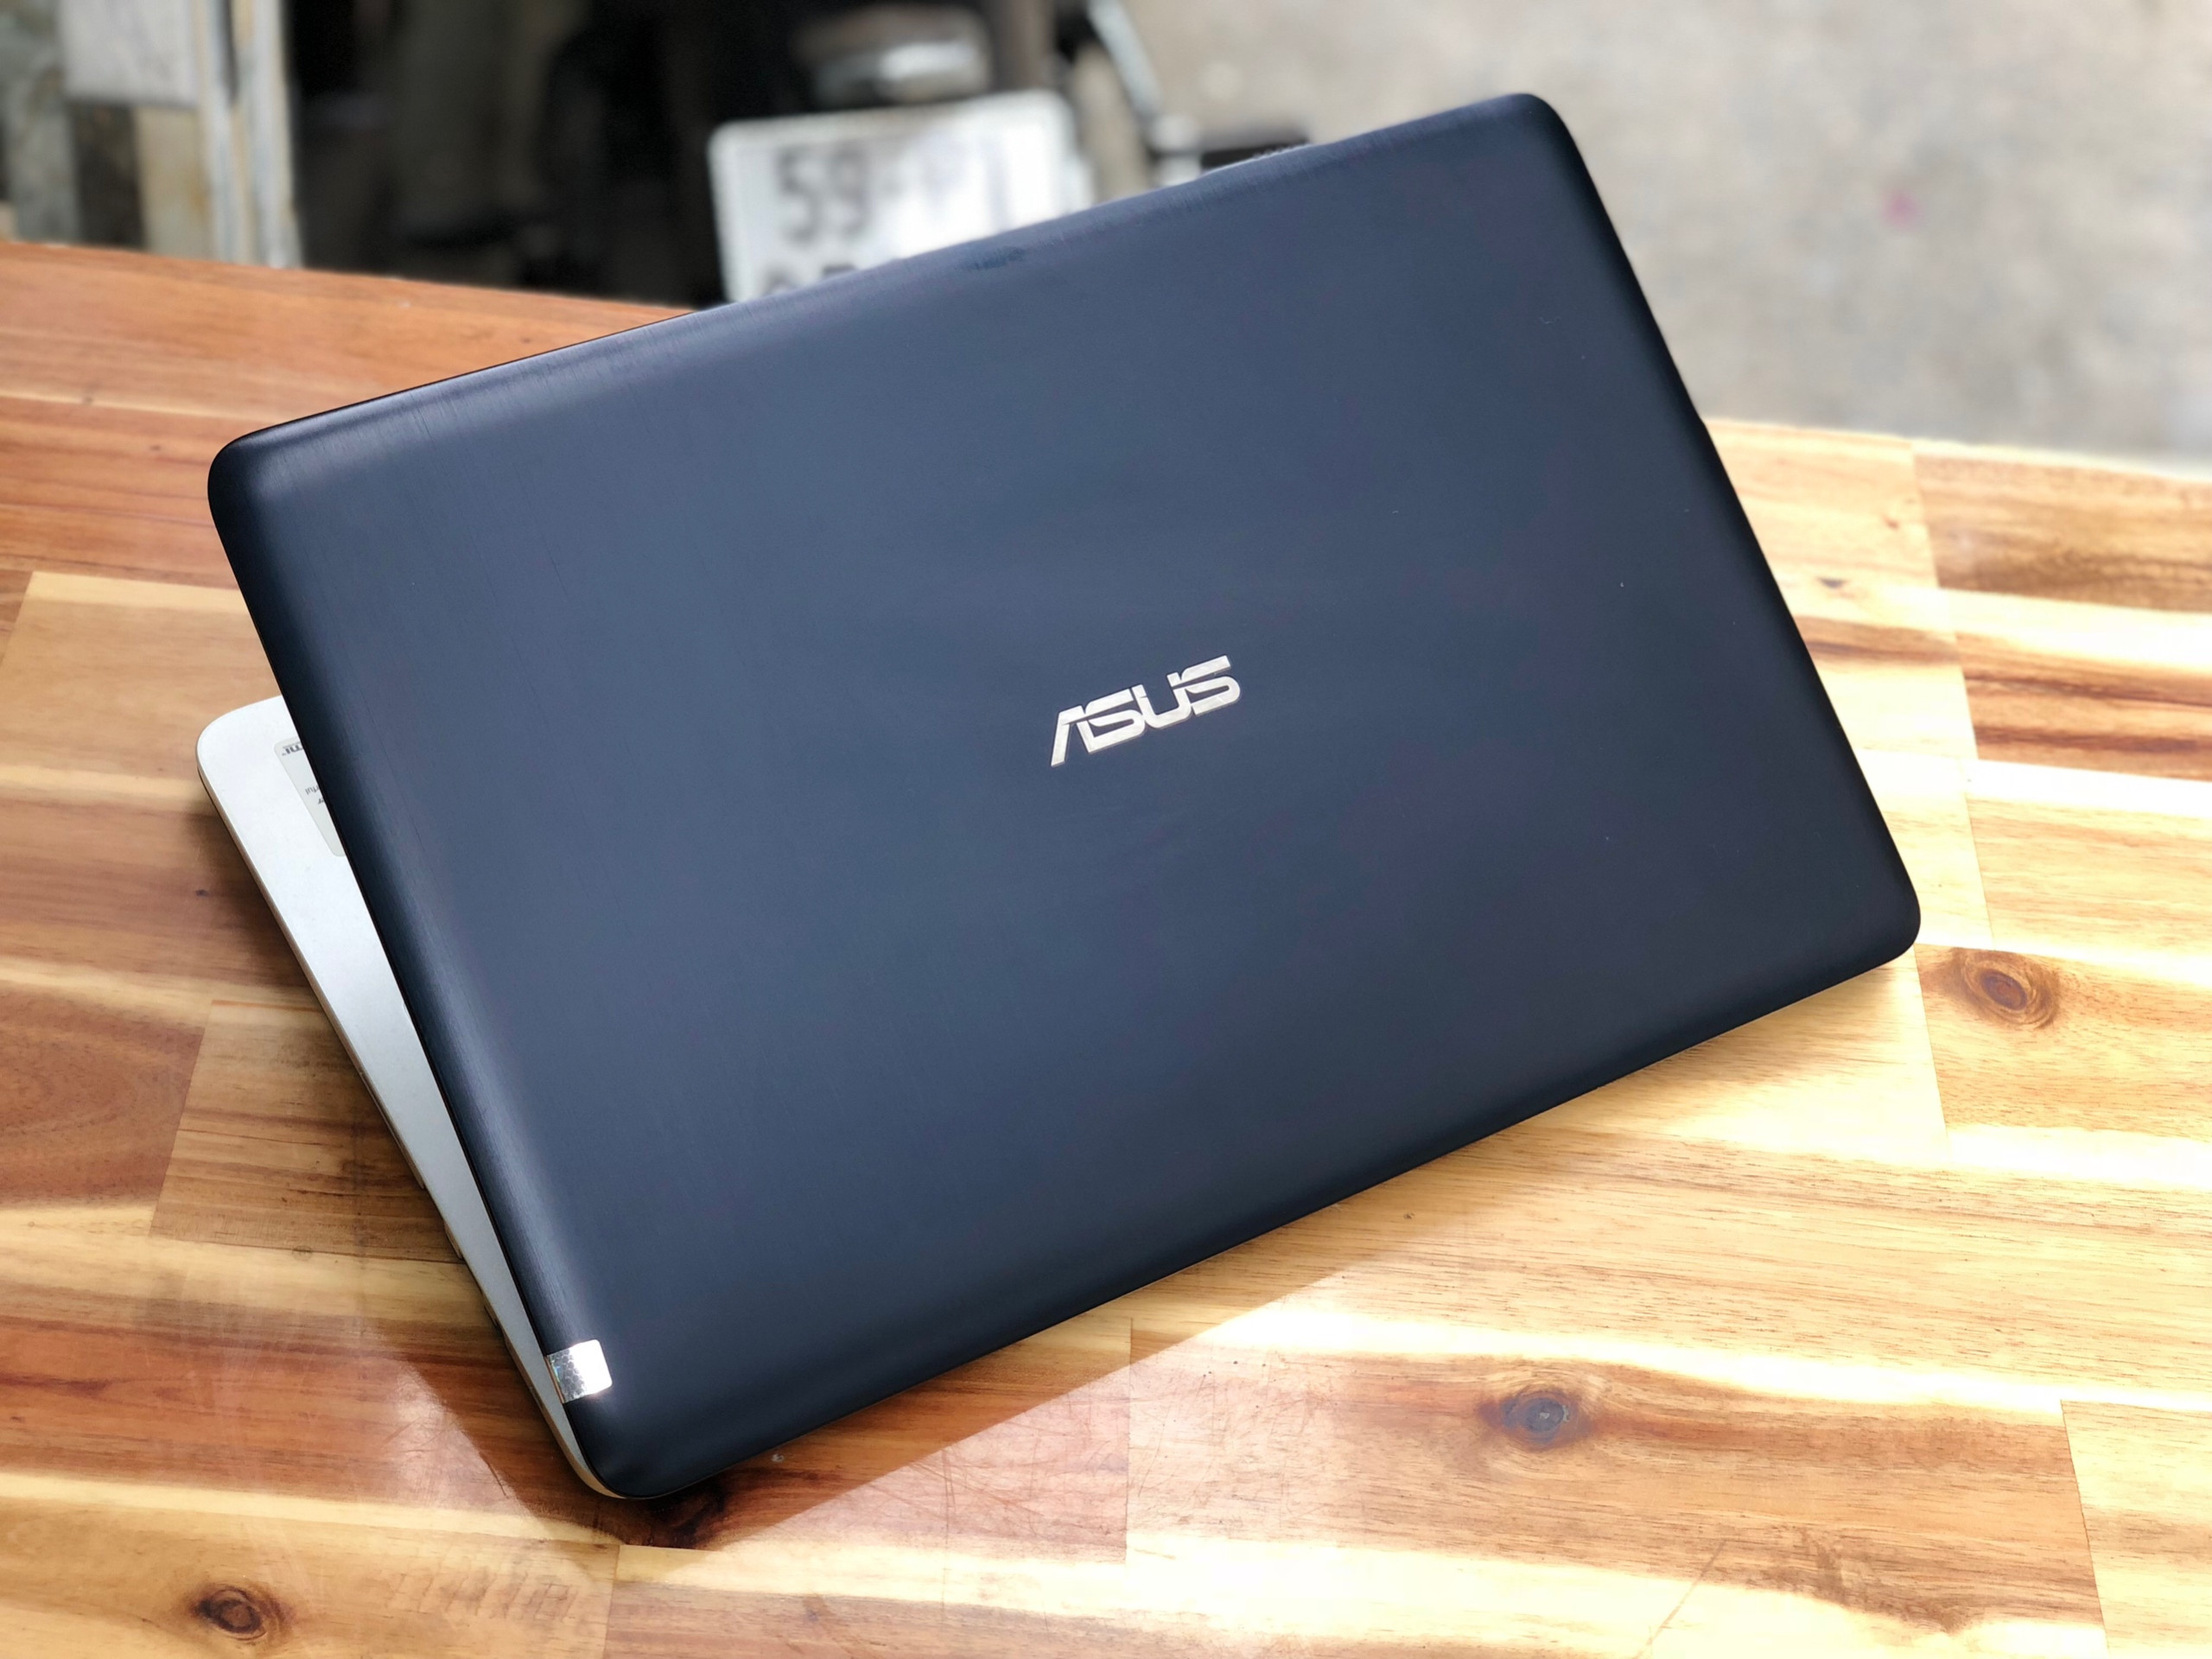 Laptop Asus K501LB, i5 5200U 4G 1000G Vga 940M Full HD Like new Giá rẻ3